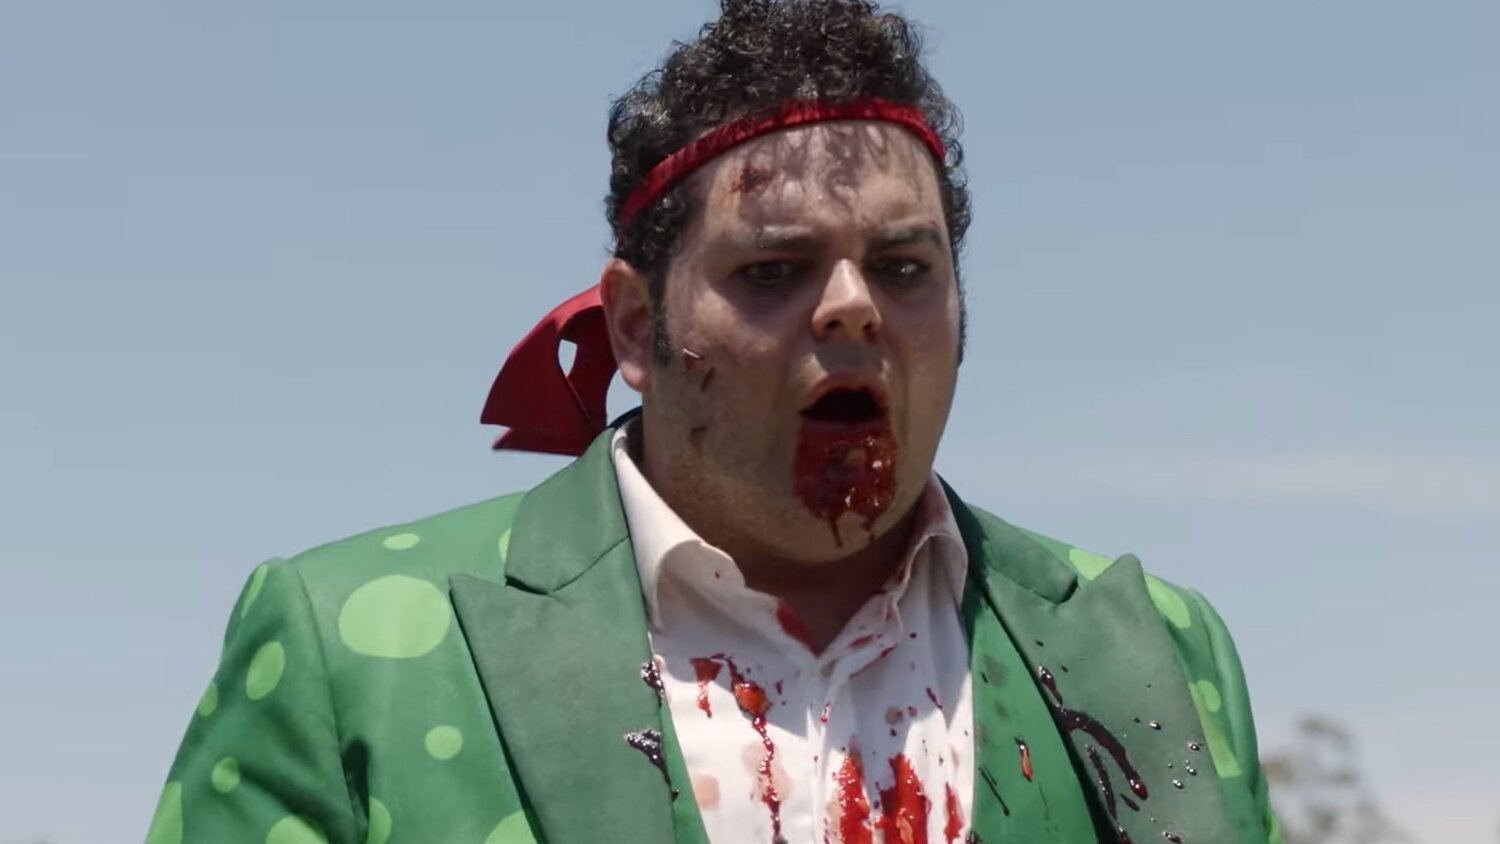 gruesome-new-red-band-trailer-for-lupita-nyongos-zombie-comedy-little-monsters-social.jpg